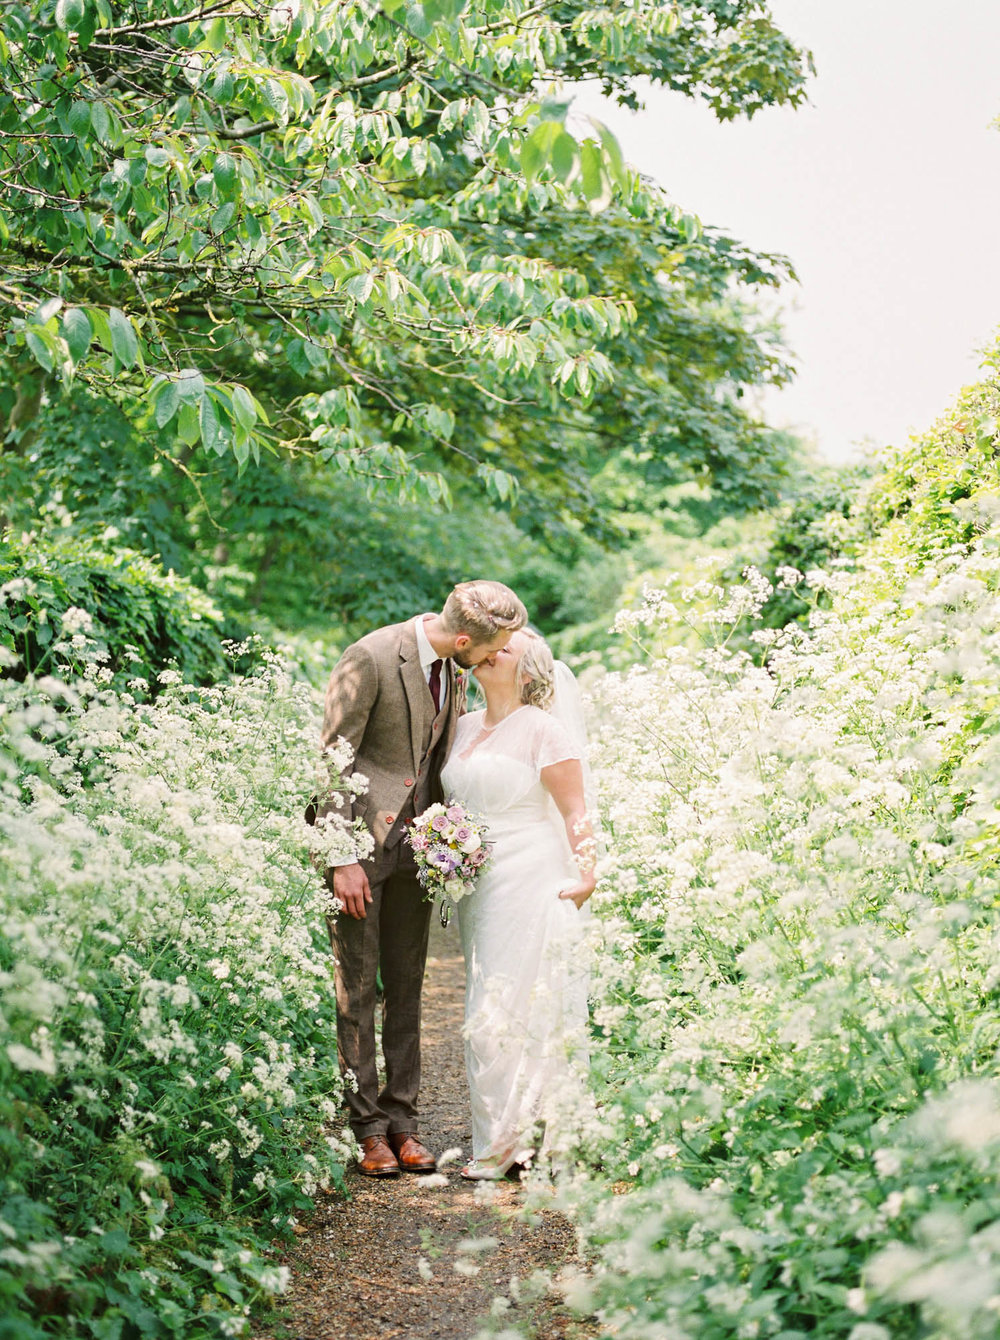 Amy O'Boyle Photography- Destination & UK Fine Art Film Wedding Photographer-6.jpg